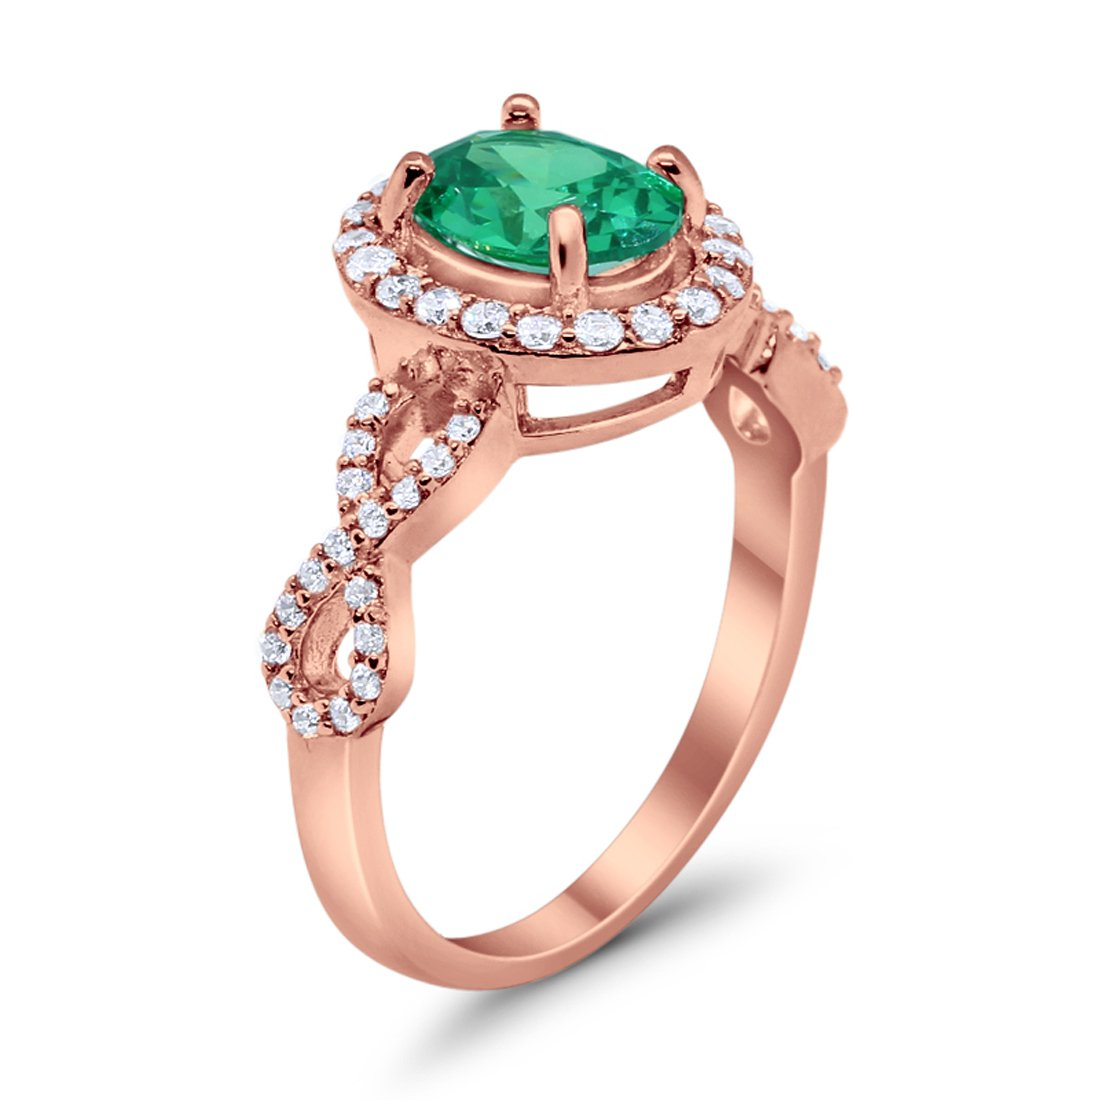 Infinity Wedding Bridal Ring Oval Rose Tone, Simulated Green Emerald CZ 925 Sterling Silver